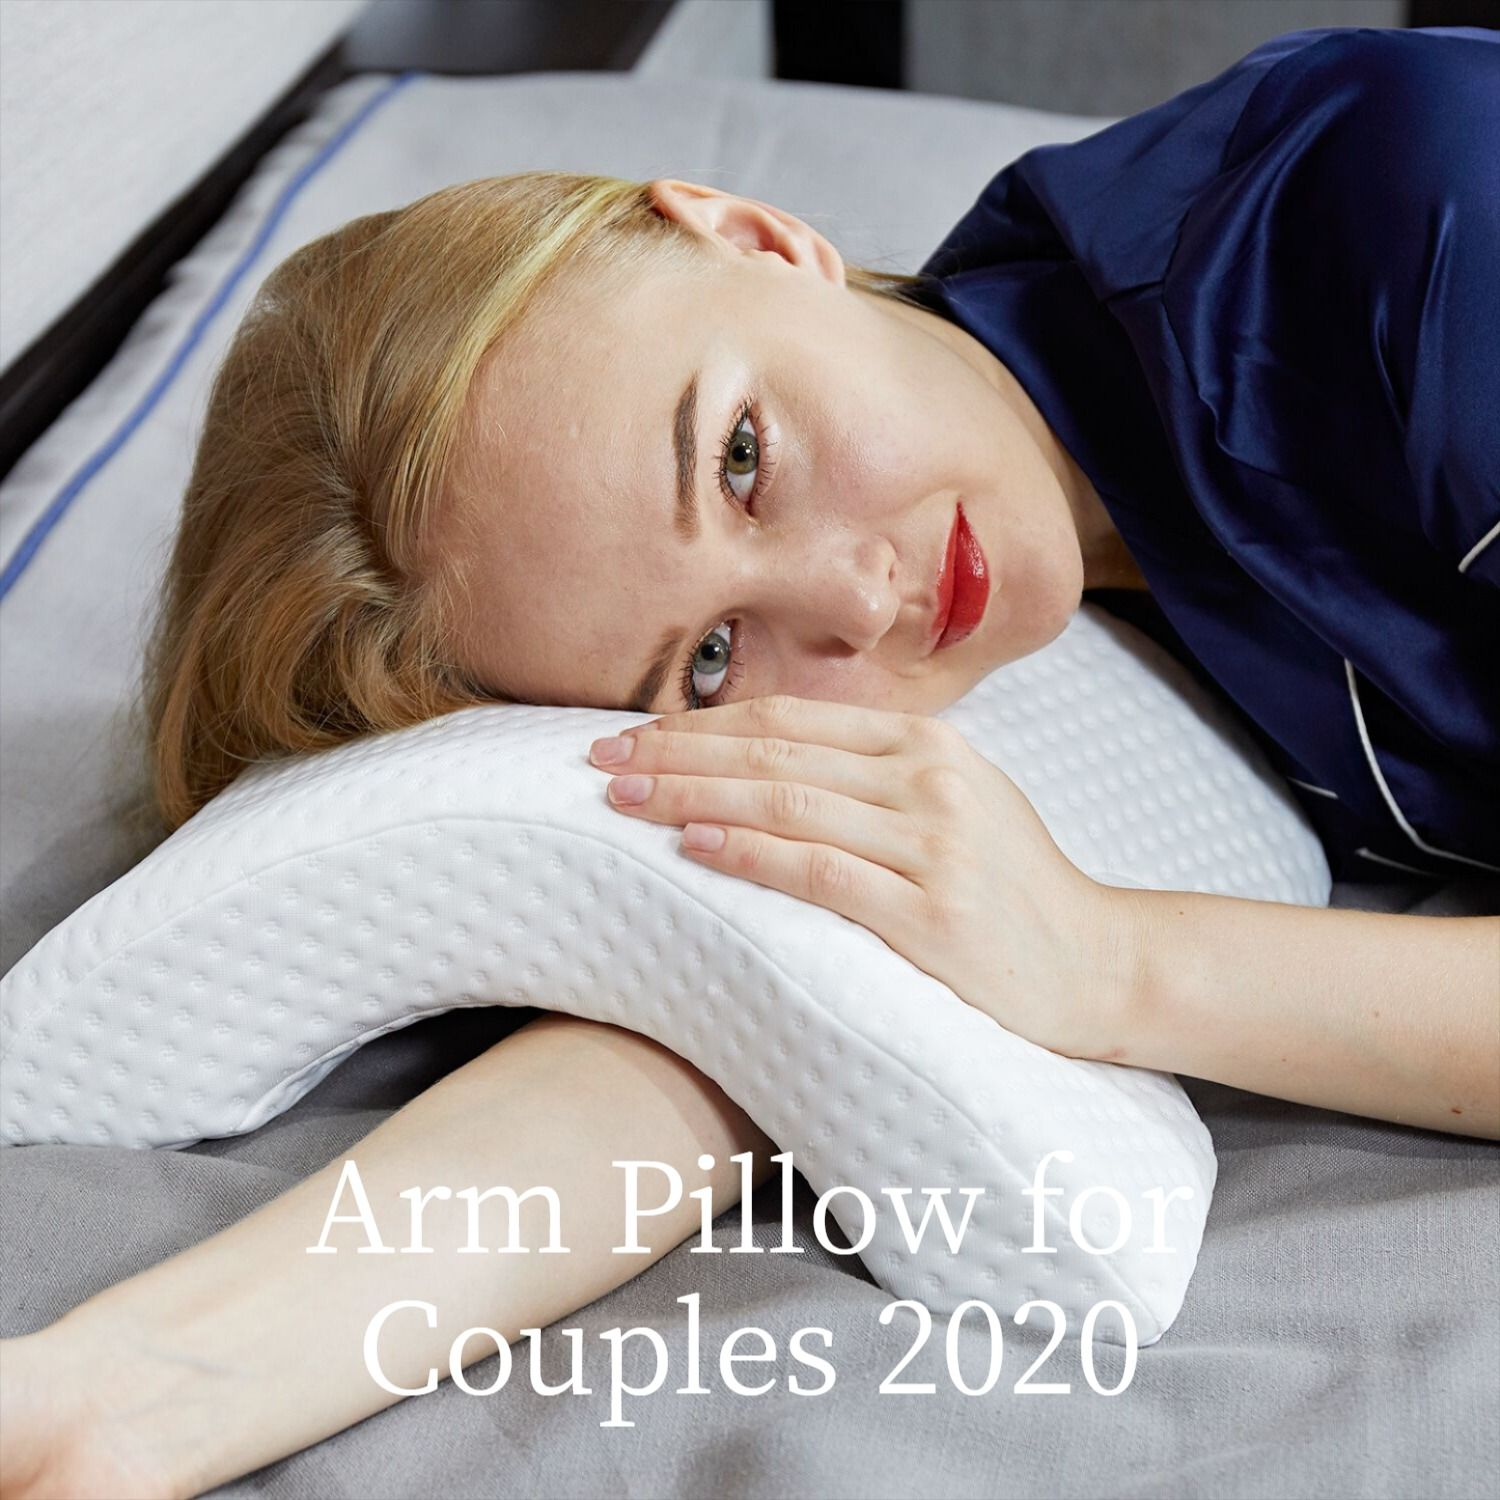 Neck Cervical Pillow for Couples in US